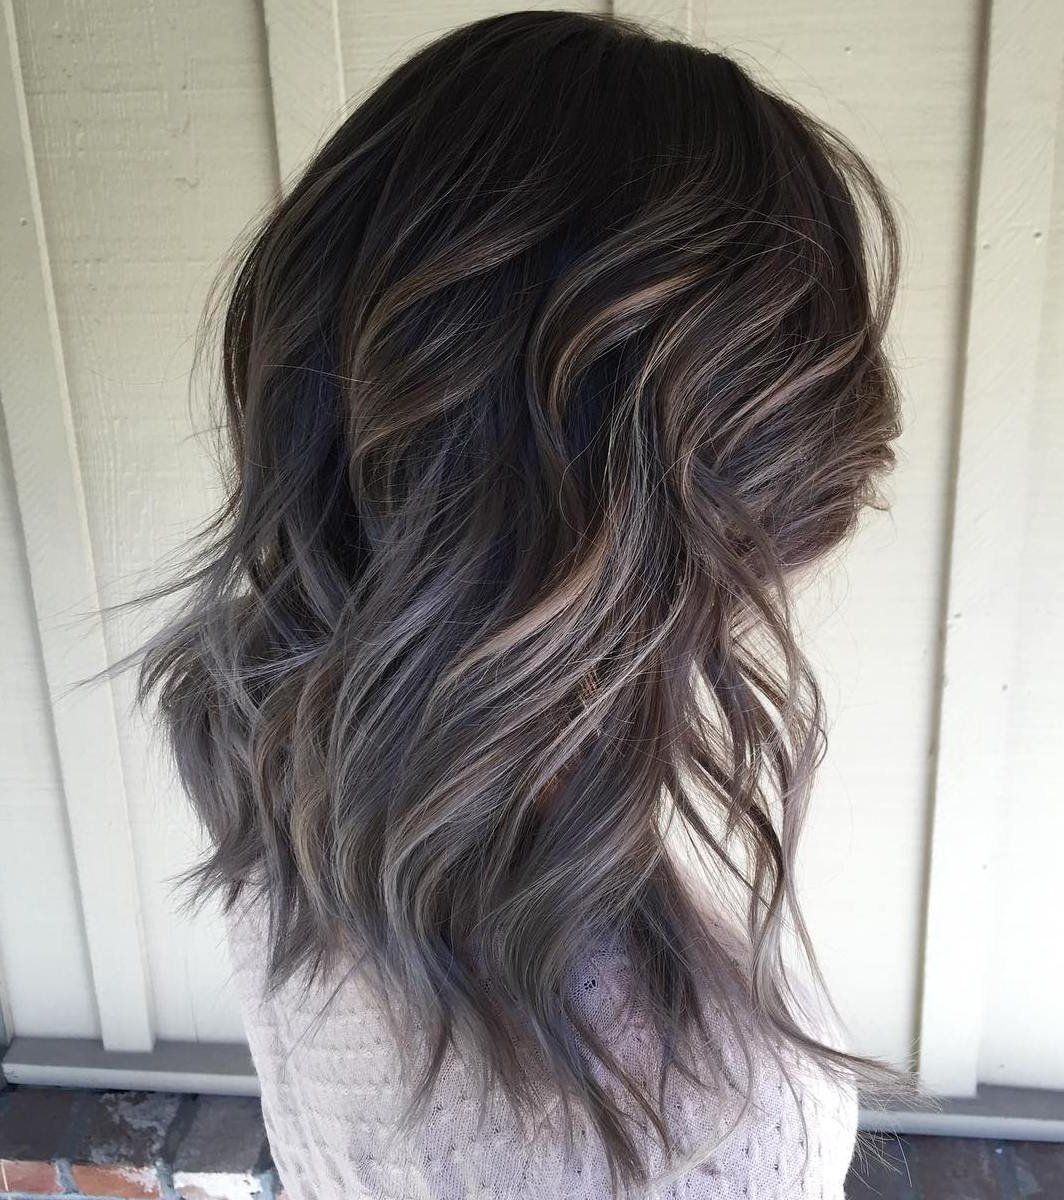 45 Ideas Of Gray And Silver Highlights On Brown Hair Pertaining To Salt And Pepper Voluminous Haircuts (View 13 of 20)